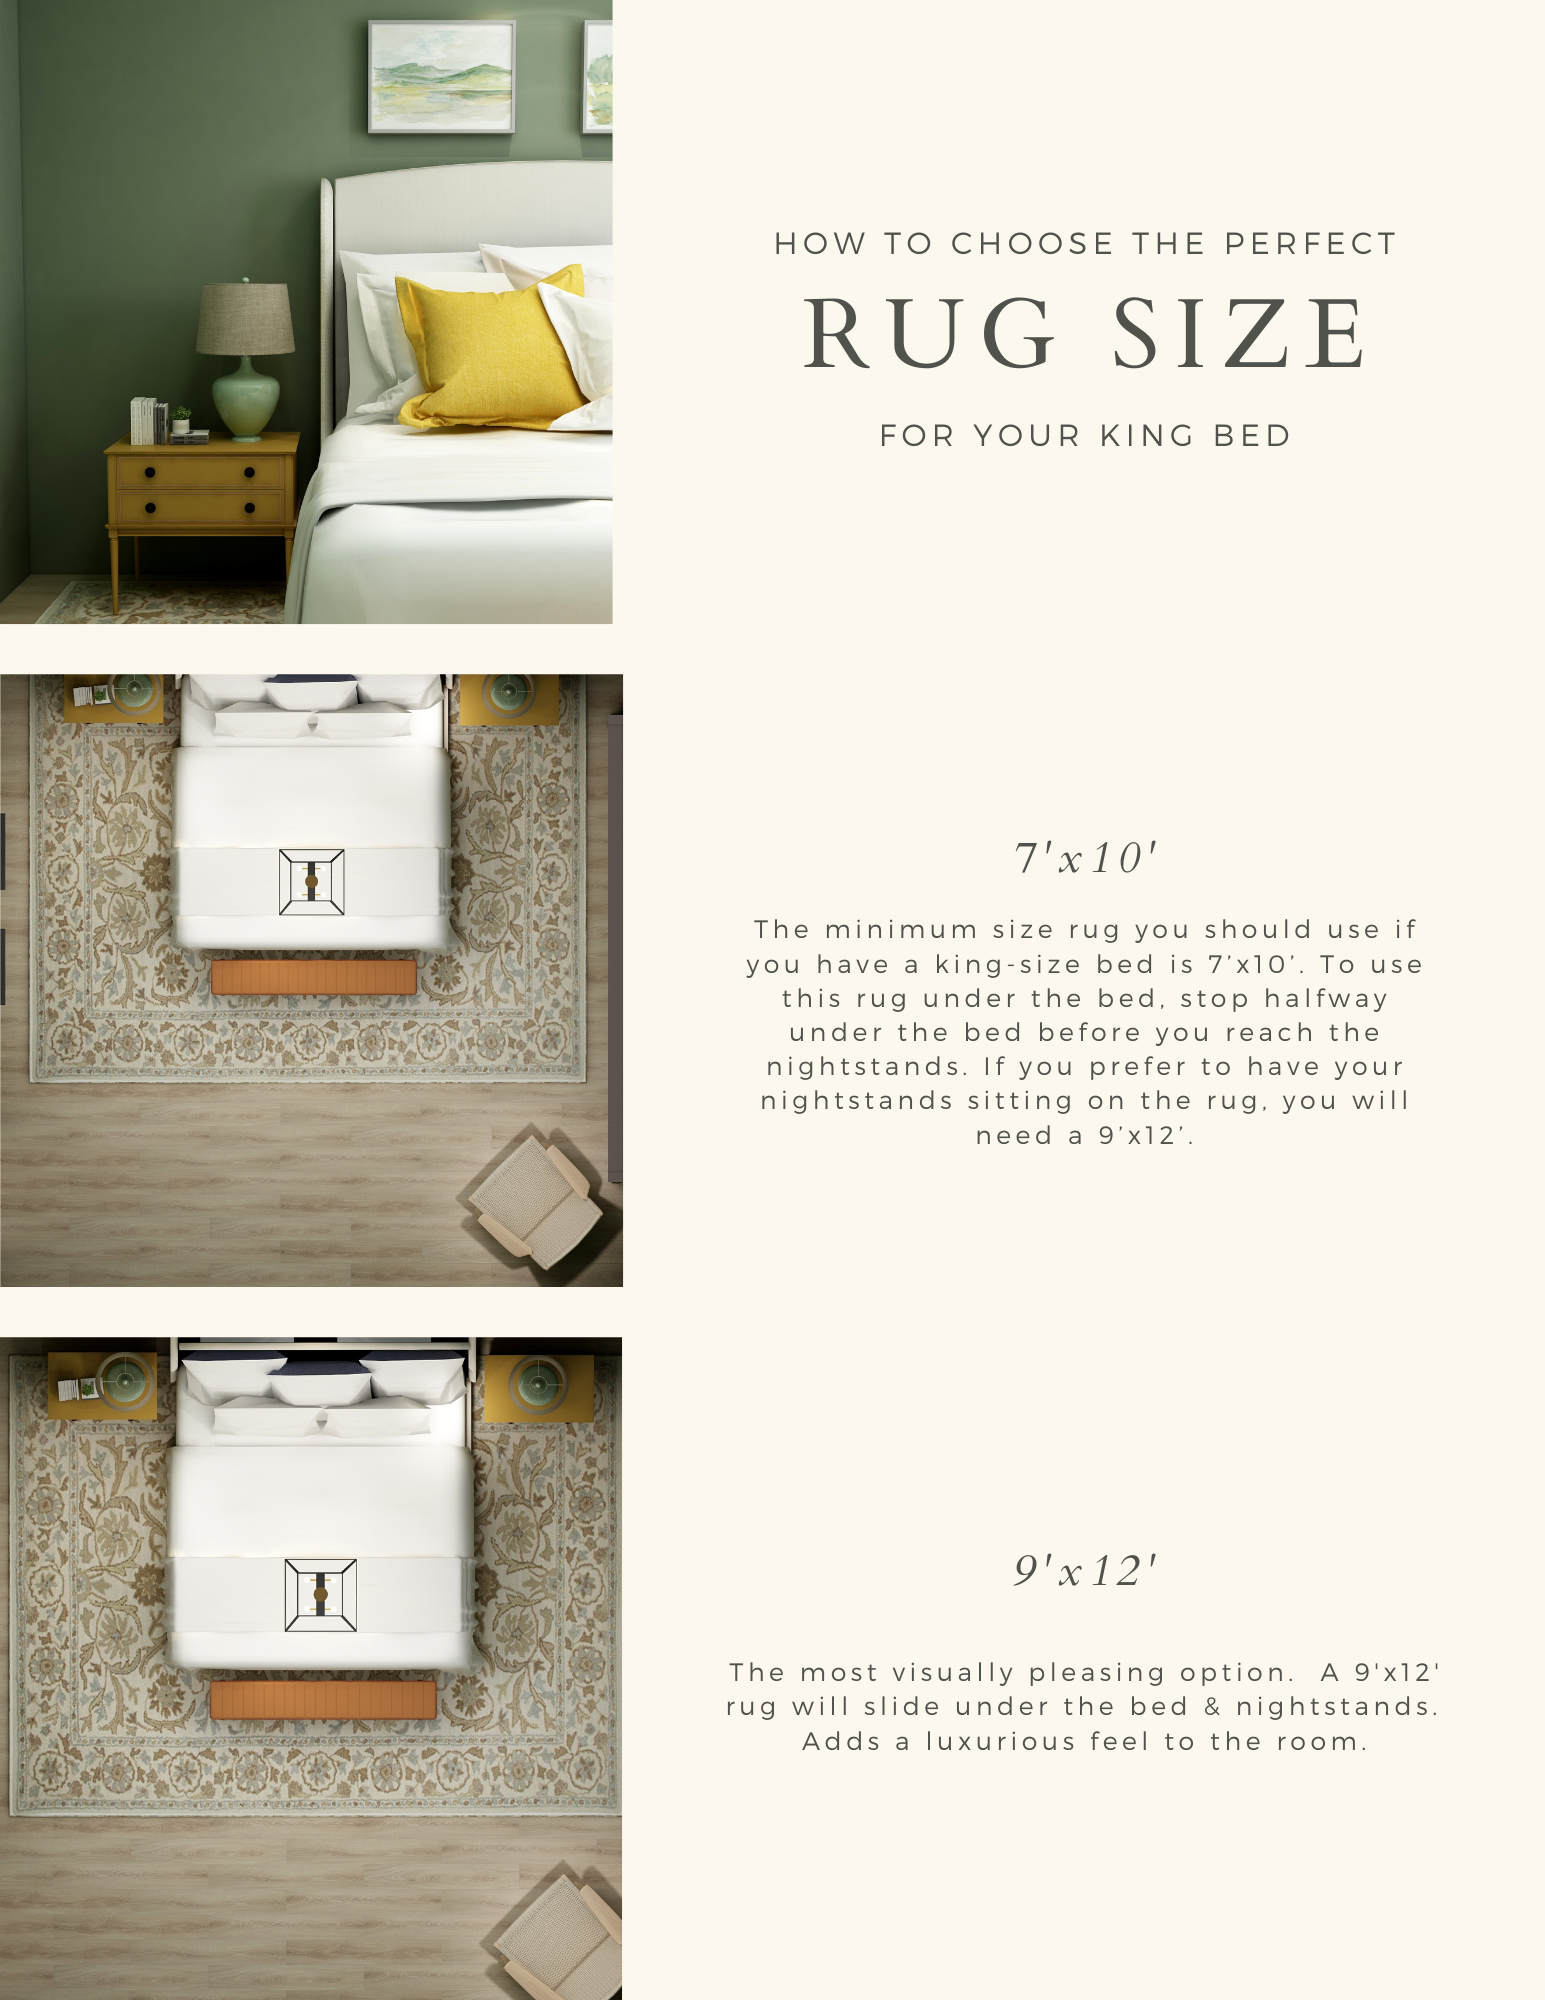 Selecting the perfect rug size for your king size bed can